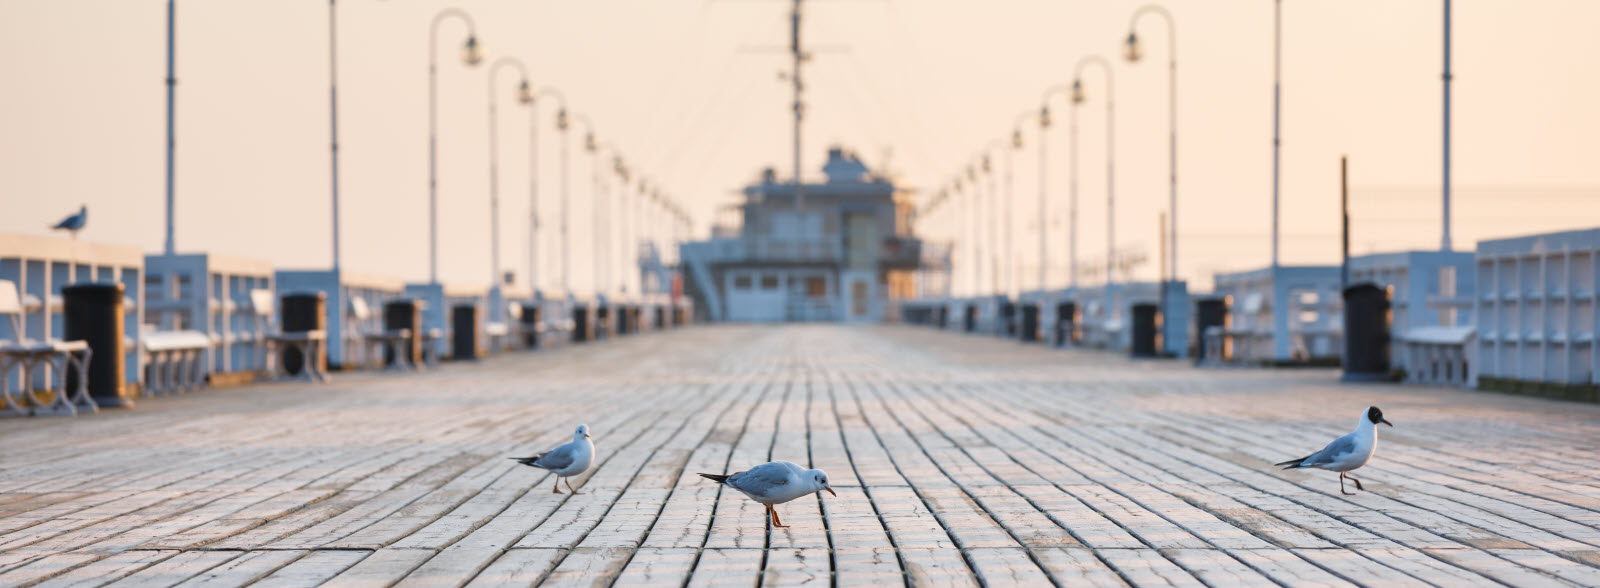 Seagull on the wooden pier during the sunrise.